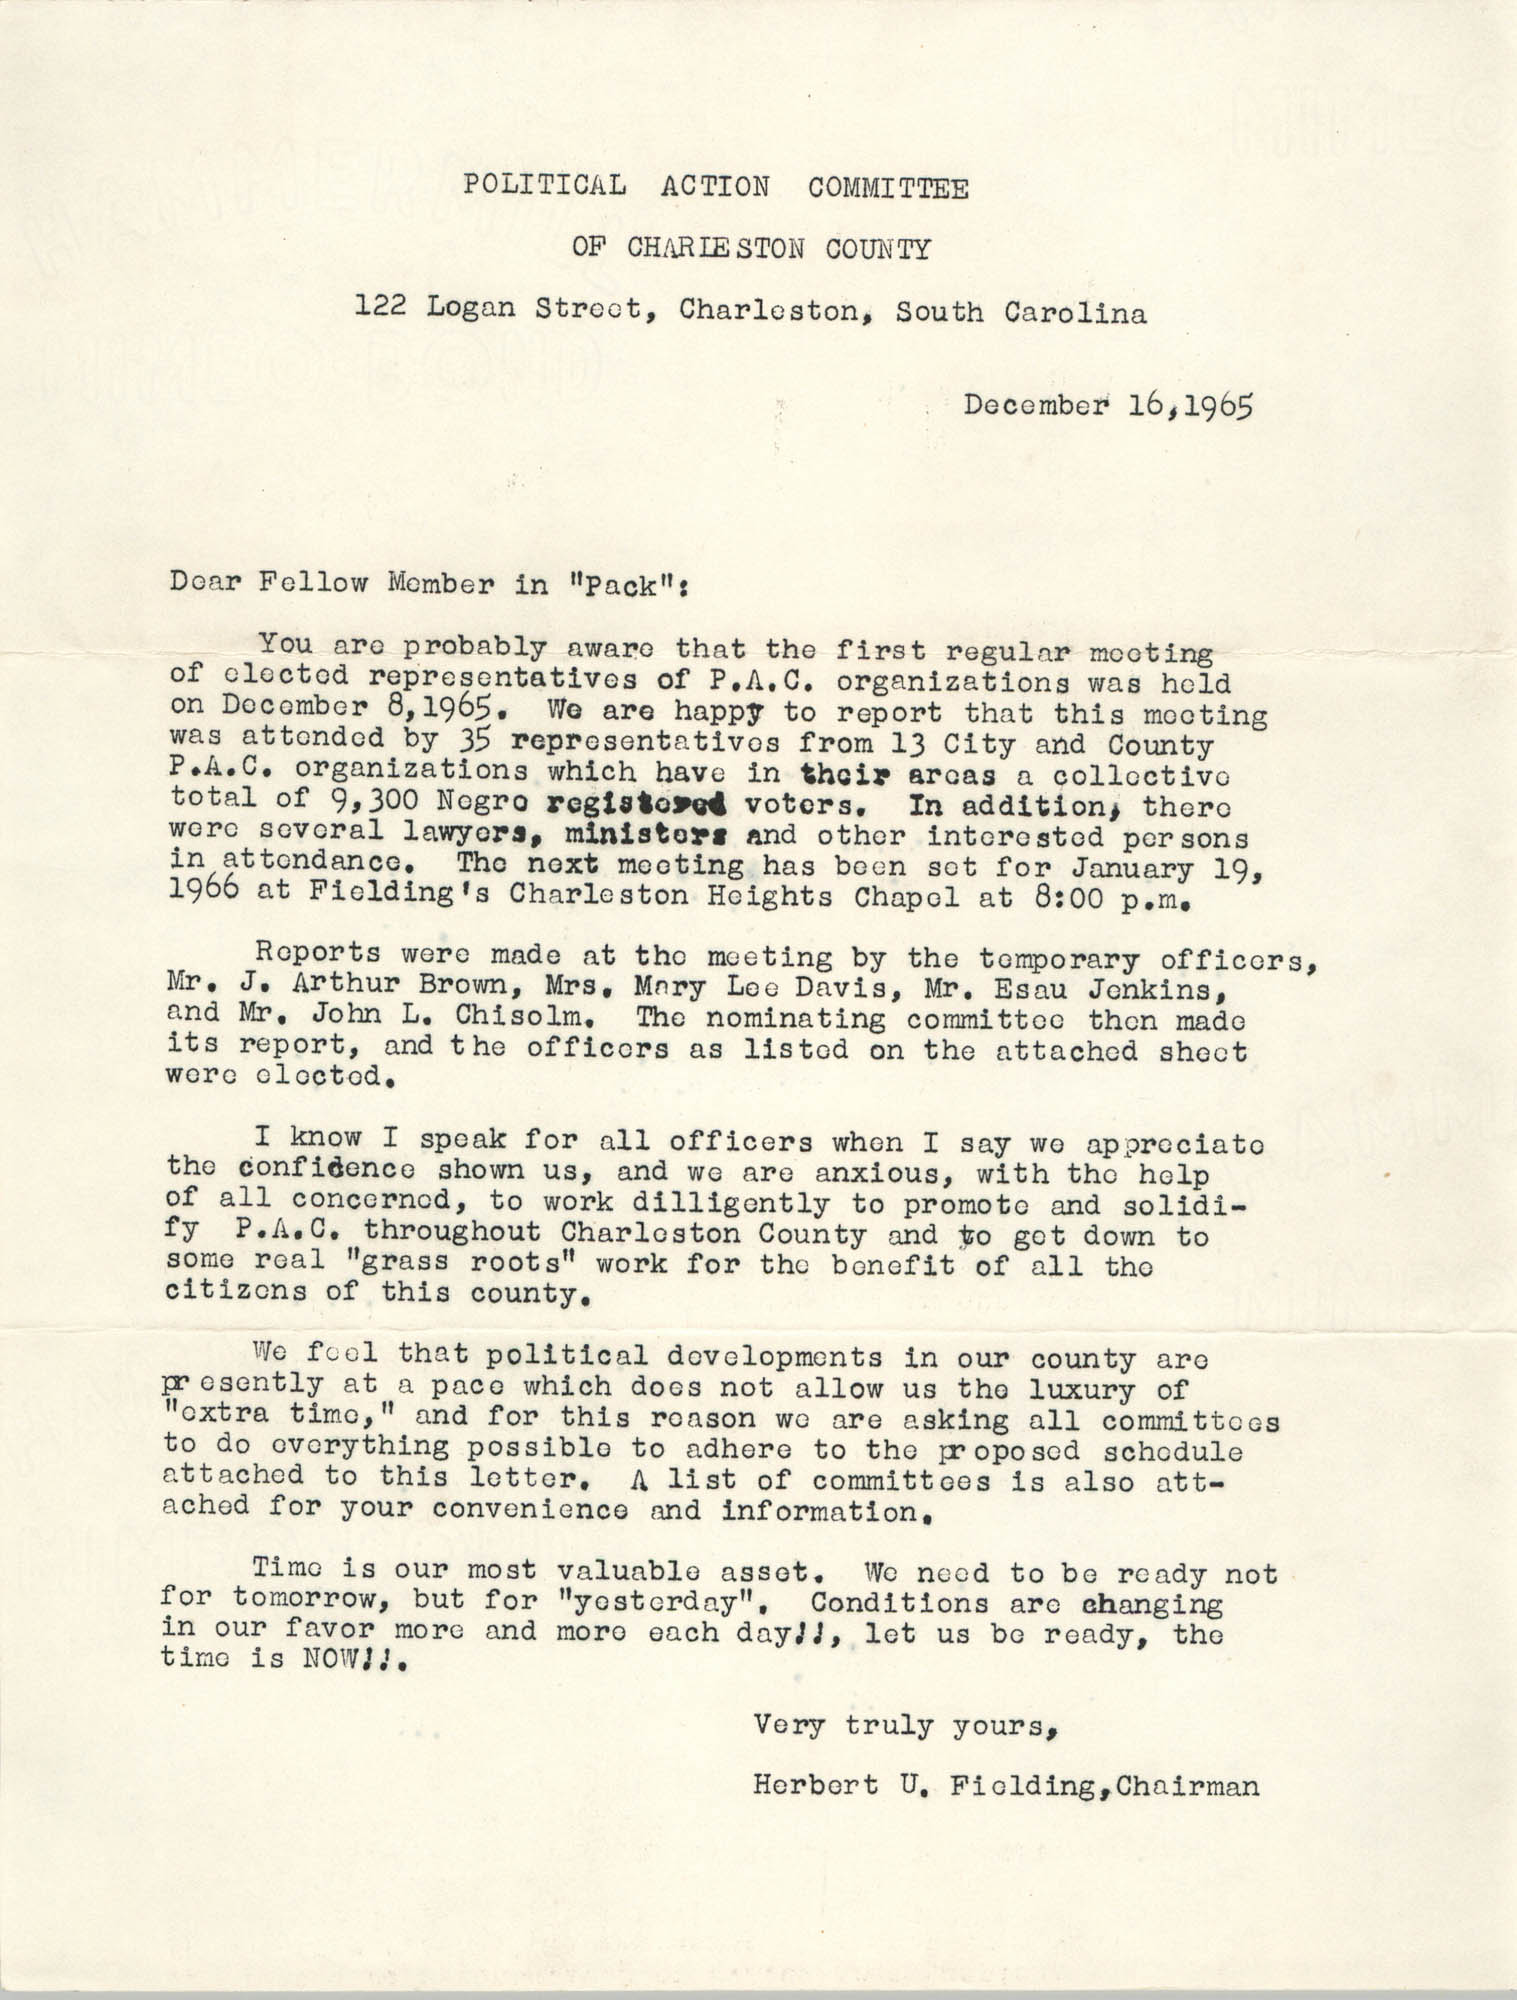 Letter from Herbert U. Fielding to